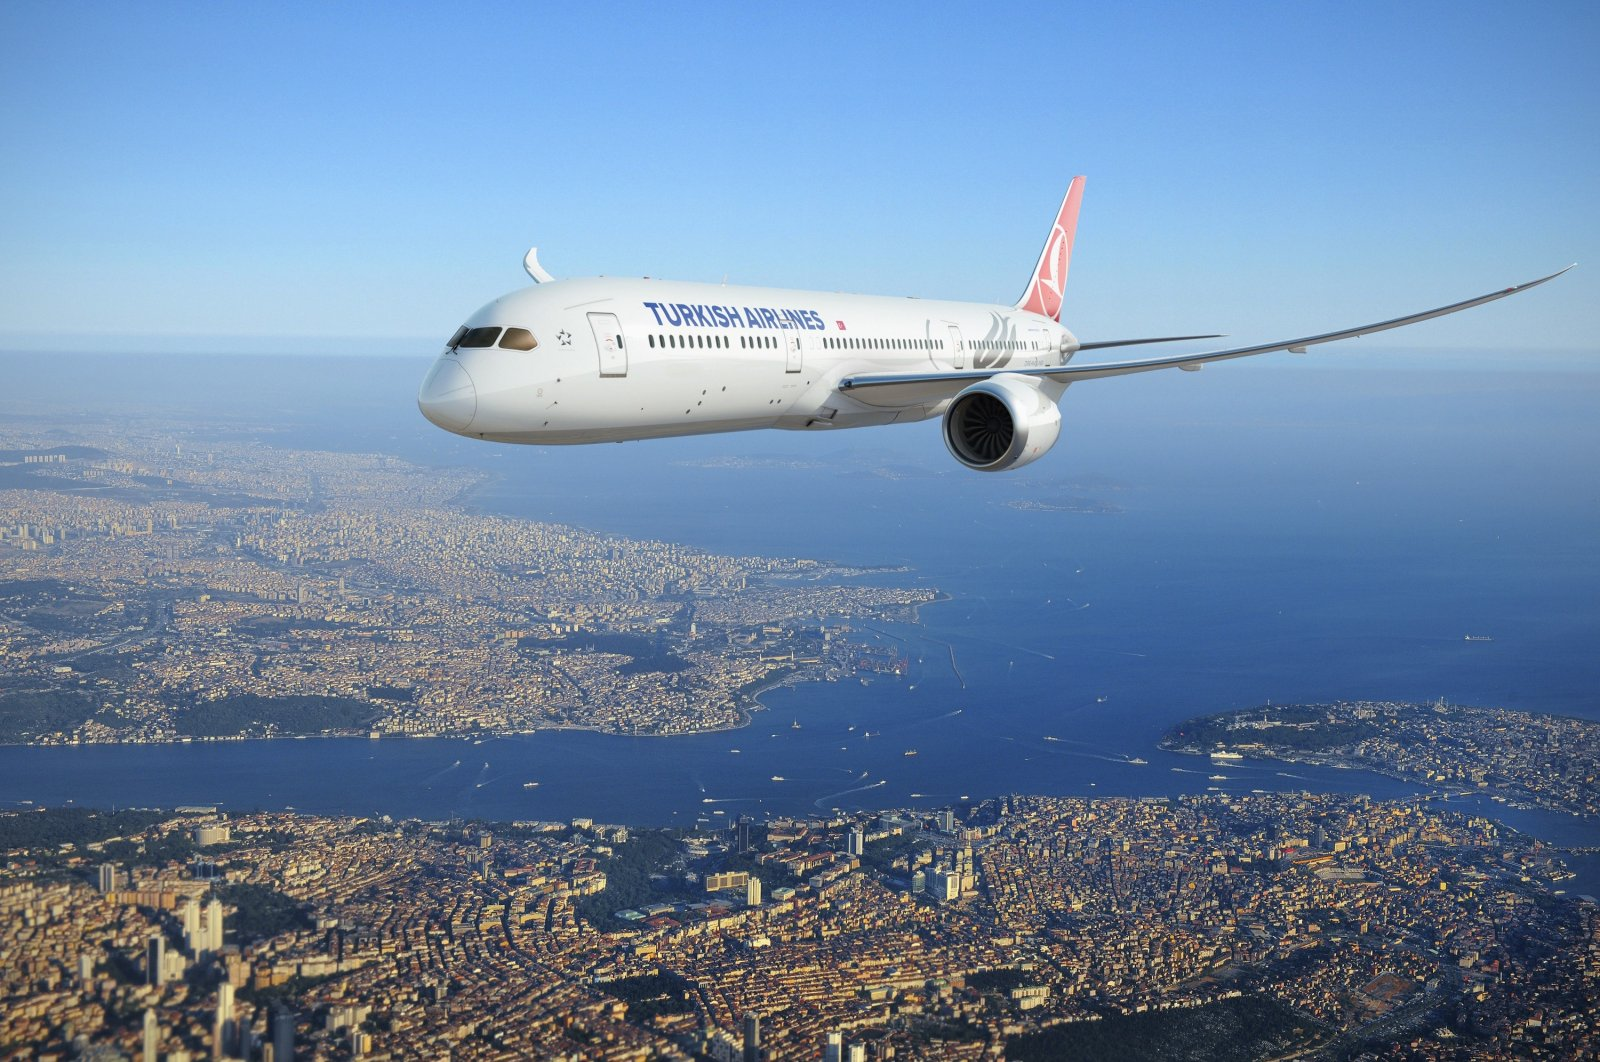 A THY plane seen over the skies of Istanbul in this photo provided on Dec. 31, 2020. (Photo by THY via IHA)